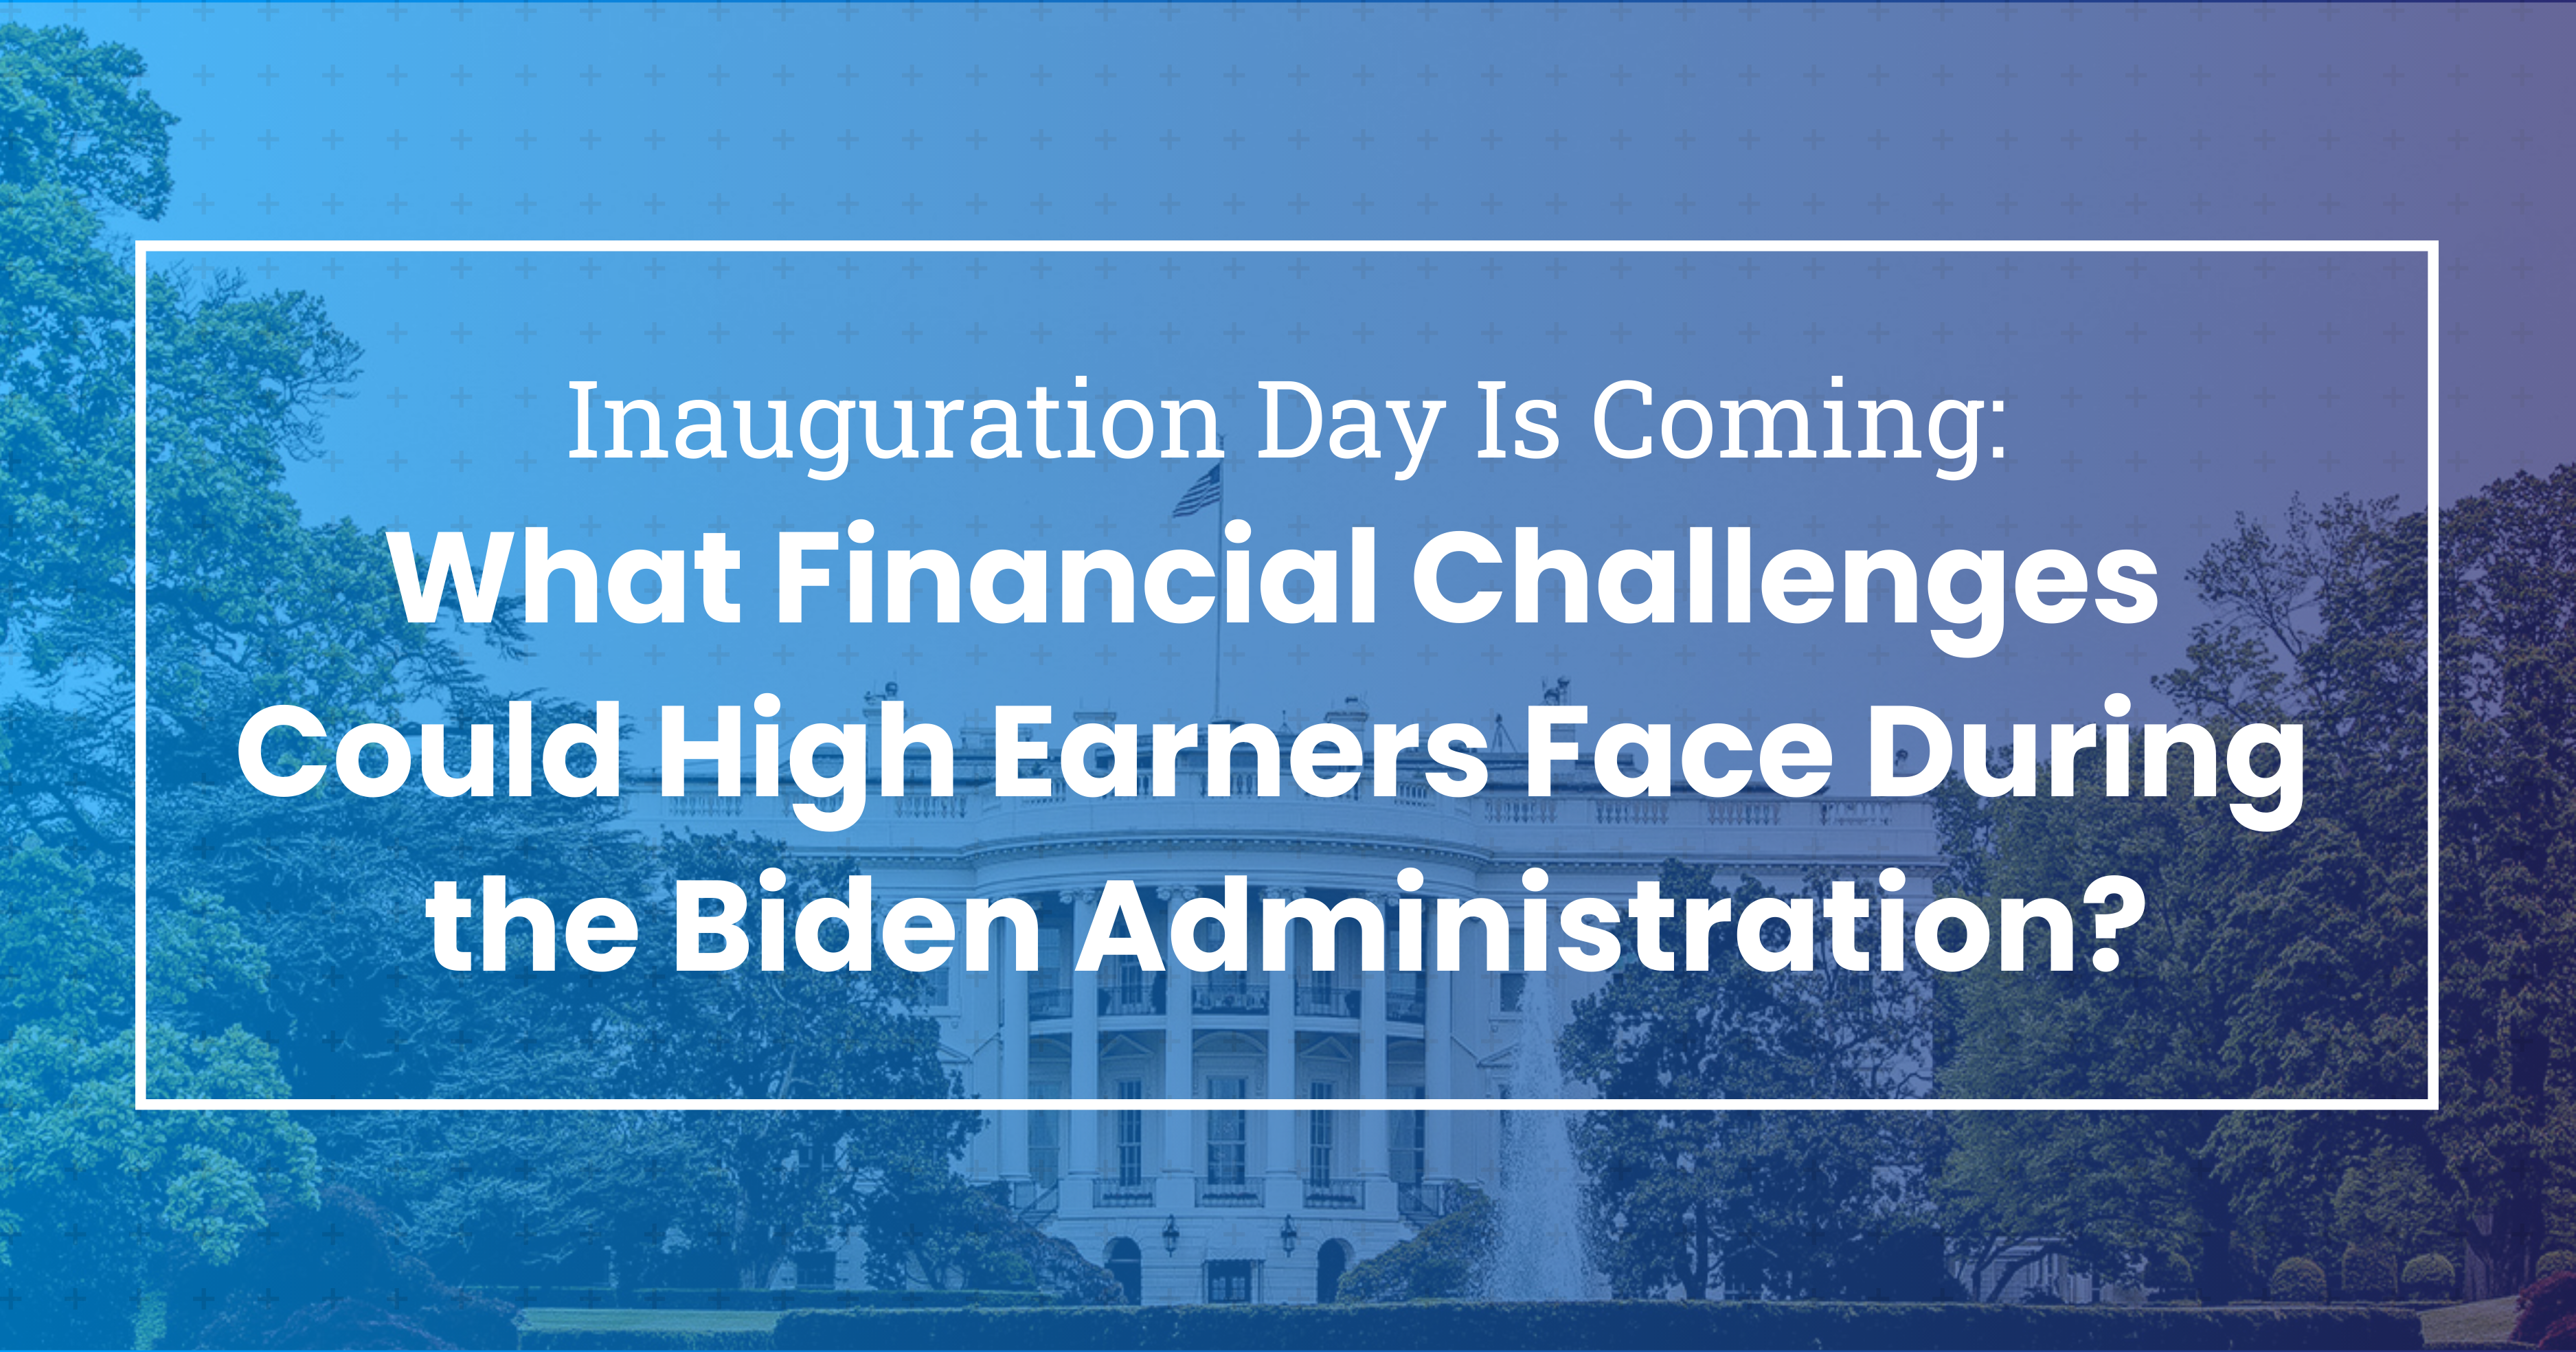 Financial Challenges For High Earners During a Biden Administration Thumbnail